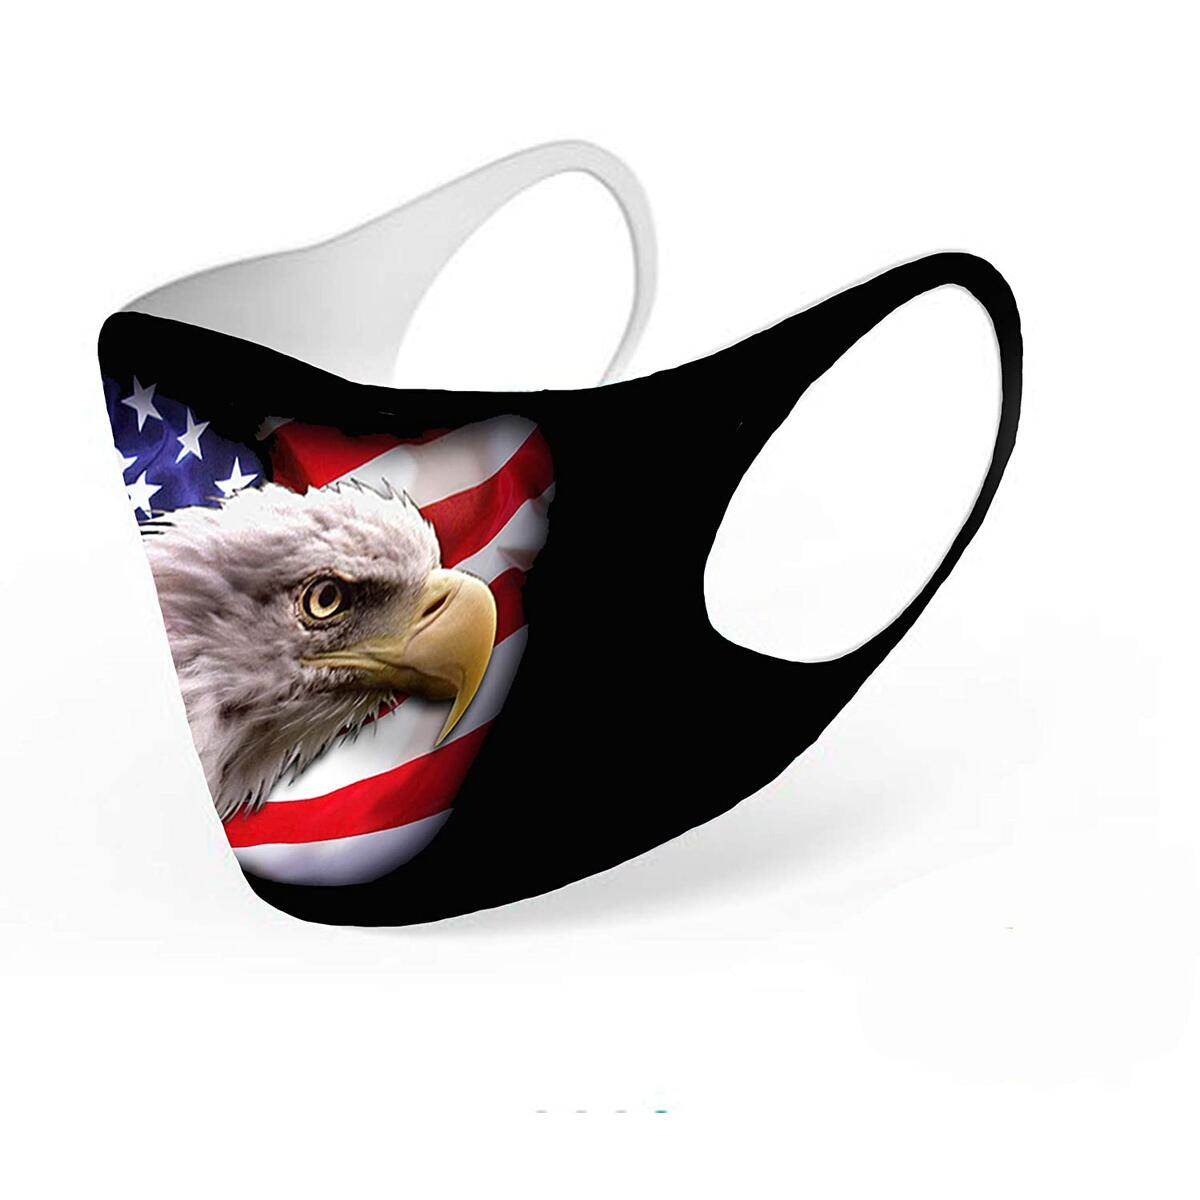 American Flag Face Covering, Small- Medium Size for Women and Teenagers, Bald Eagle Printed Neoprene Mask, Washable Mouth Nose Protective Cover, Reusable Covermask